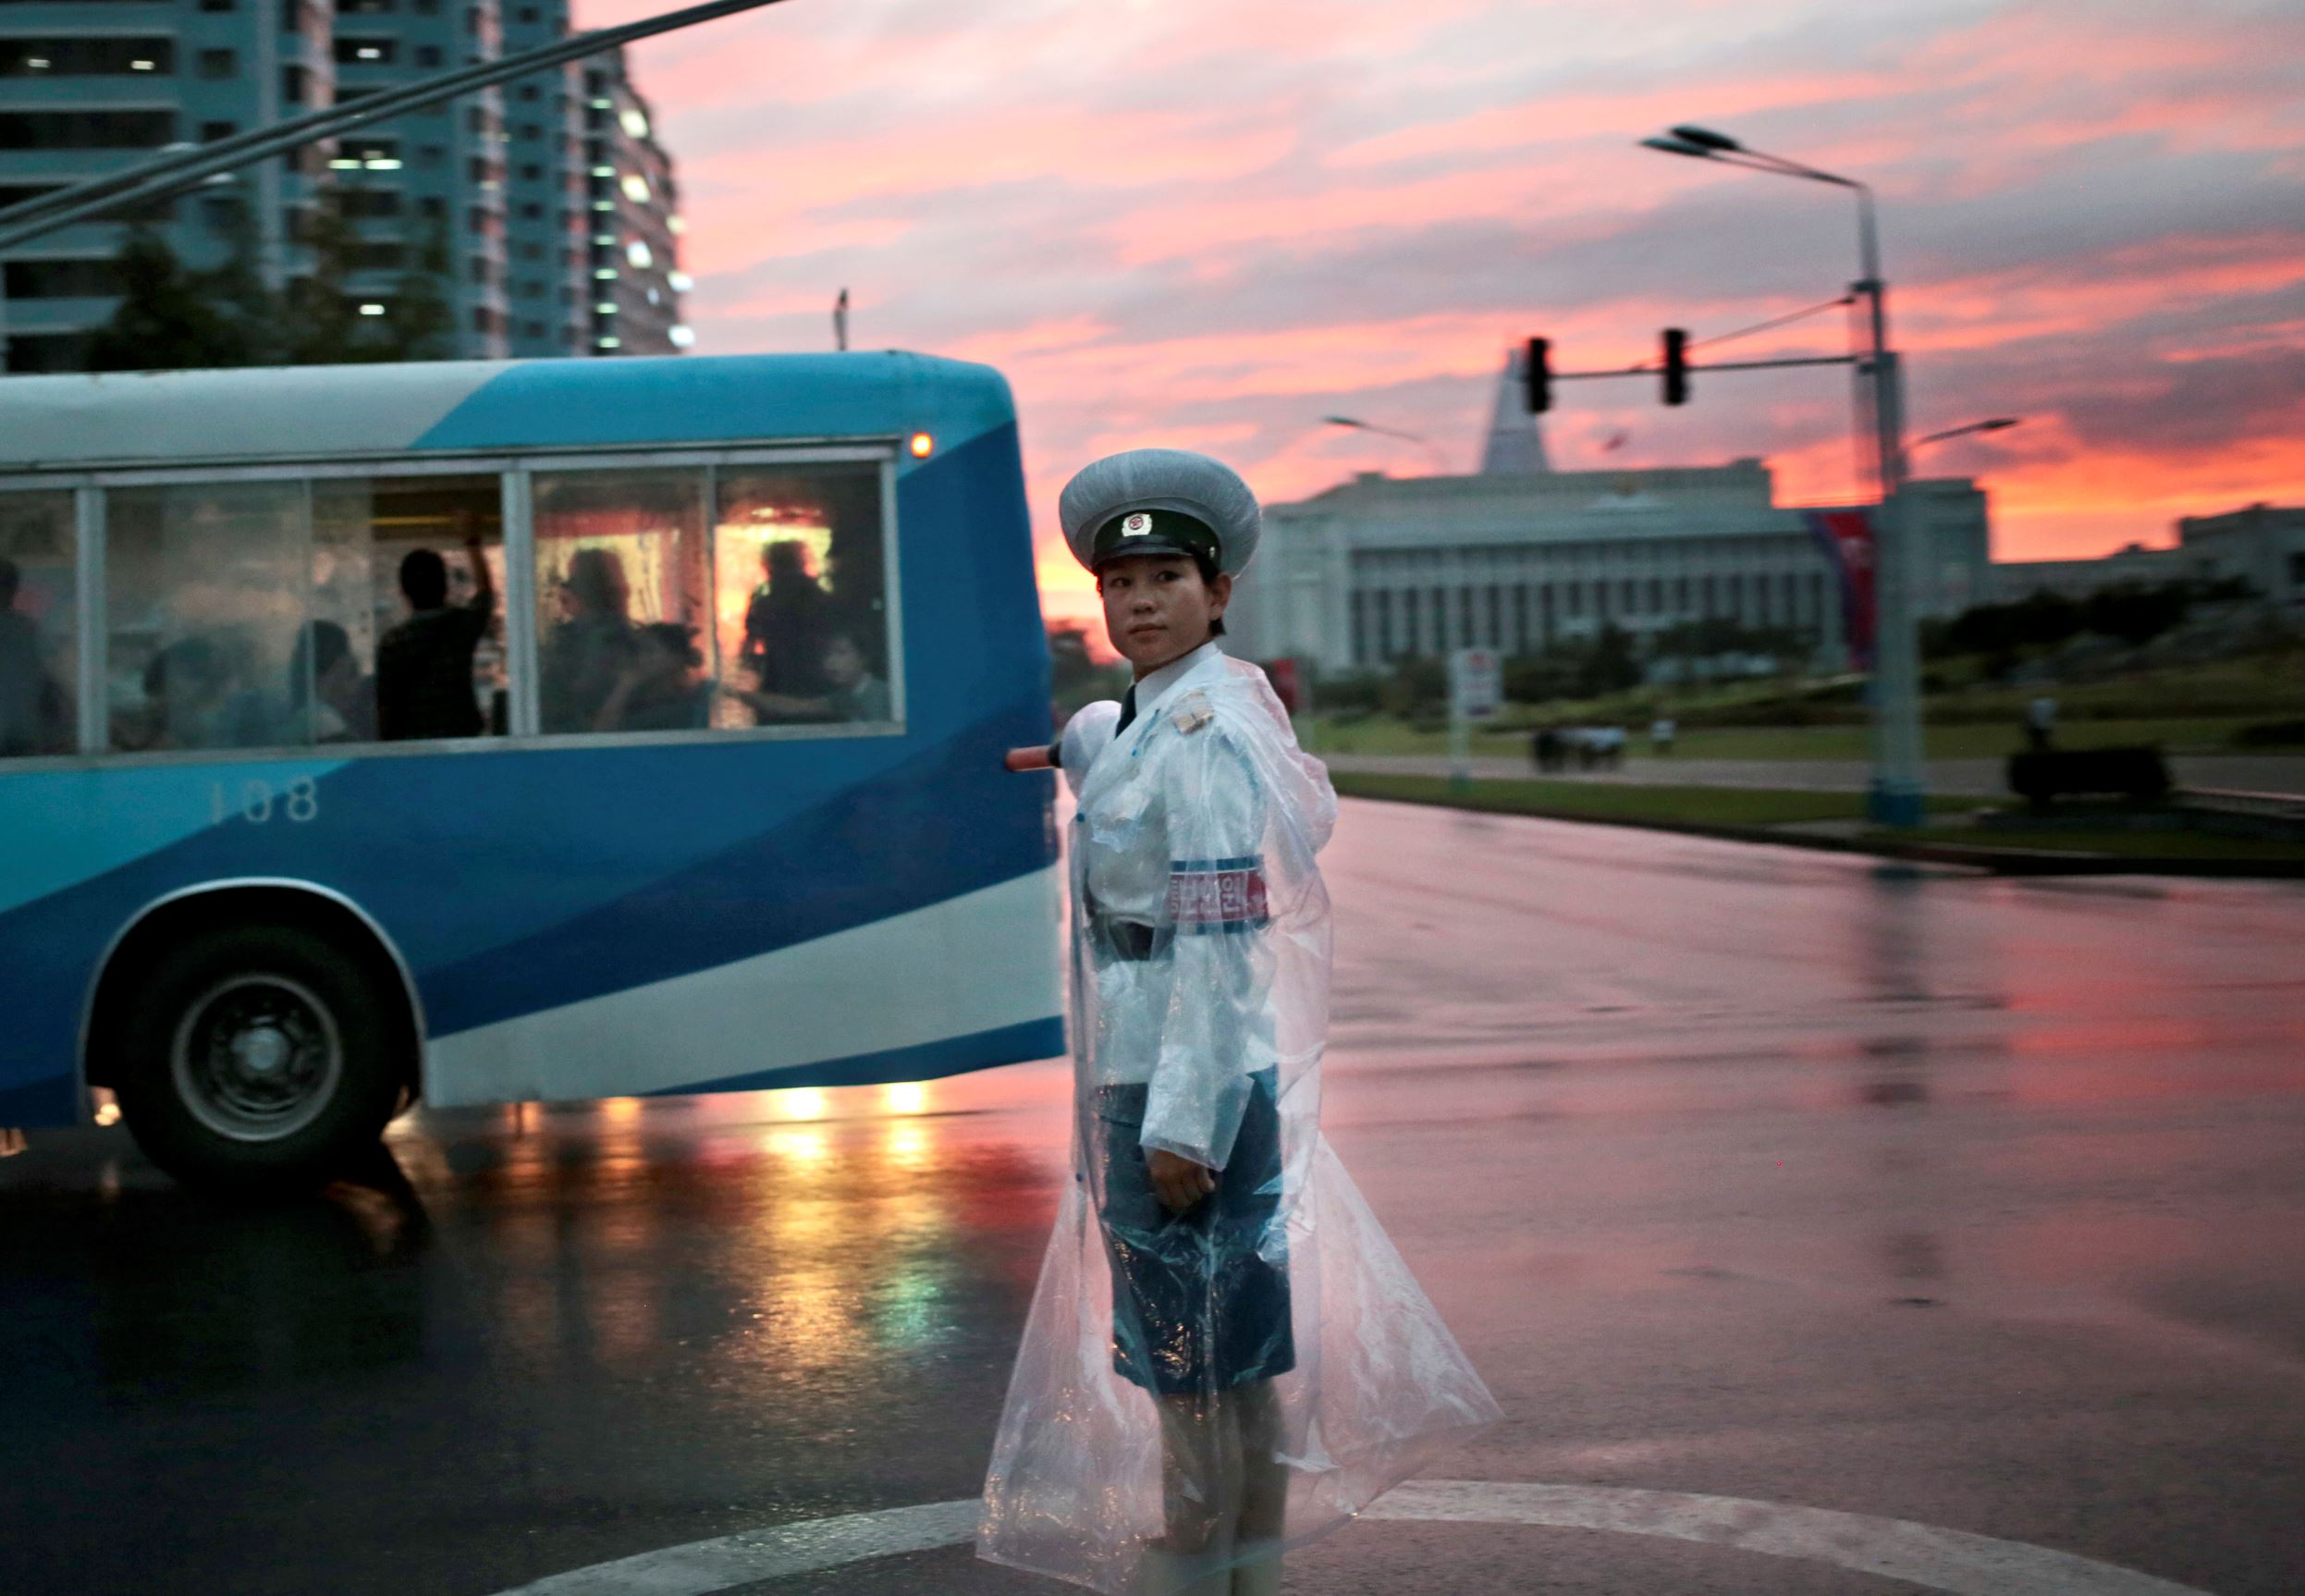 A traffic police officer directs vehicles at a street junction during sunset in Pyongyang, North Korea, on Aug. 25, 2016.